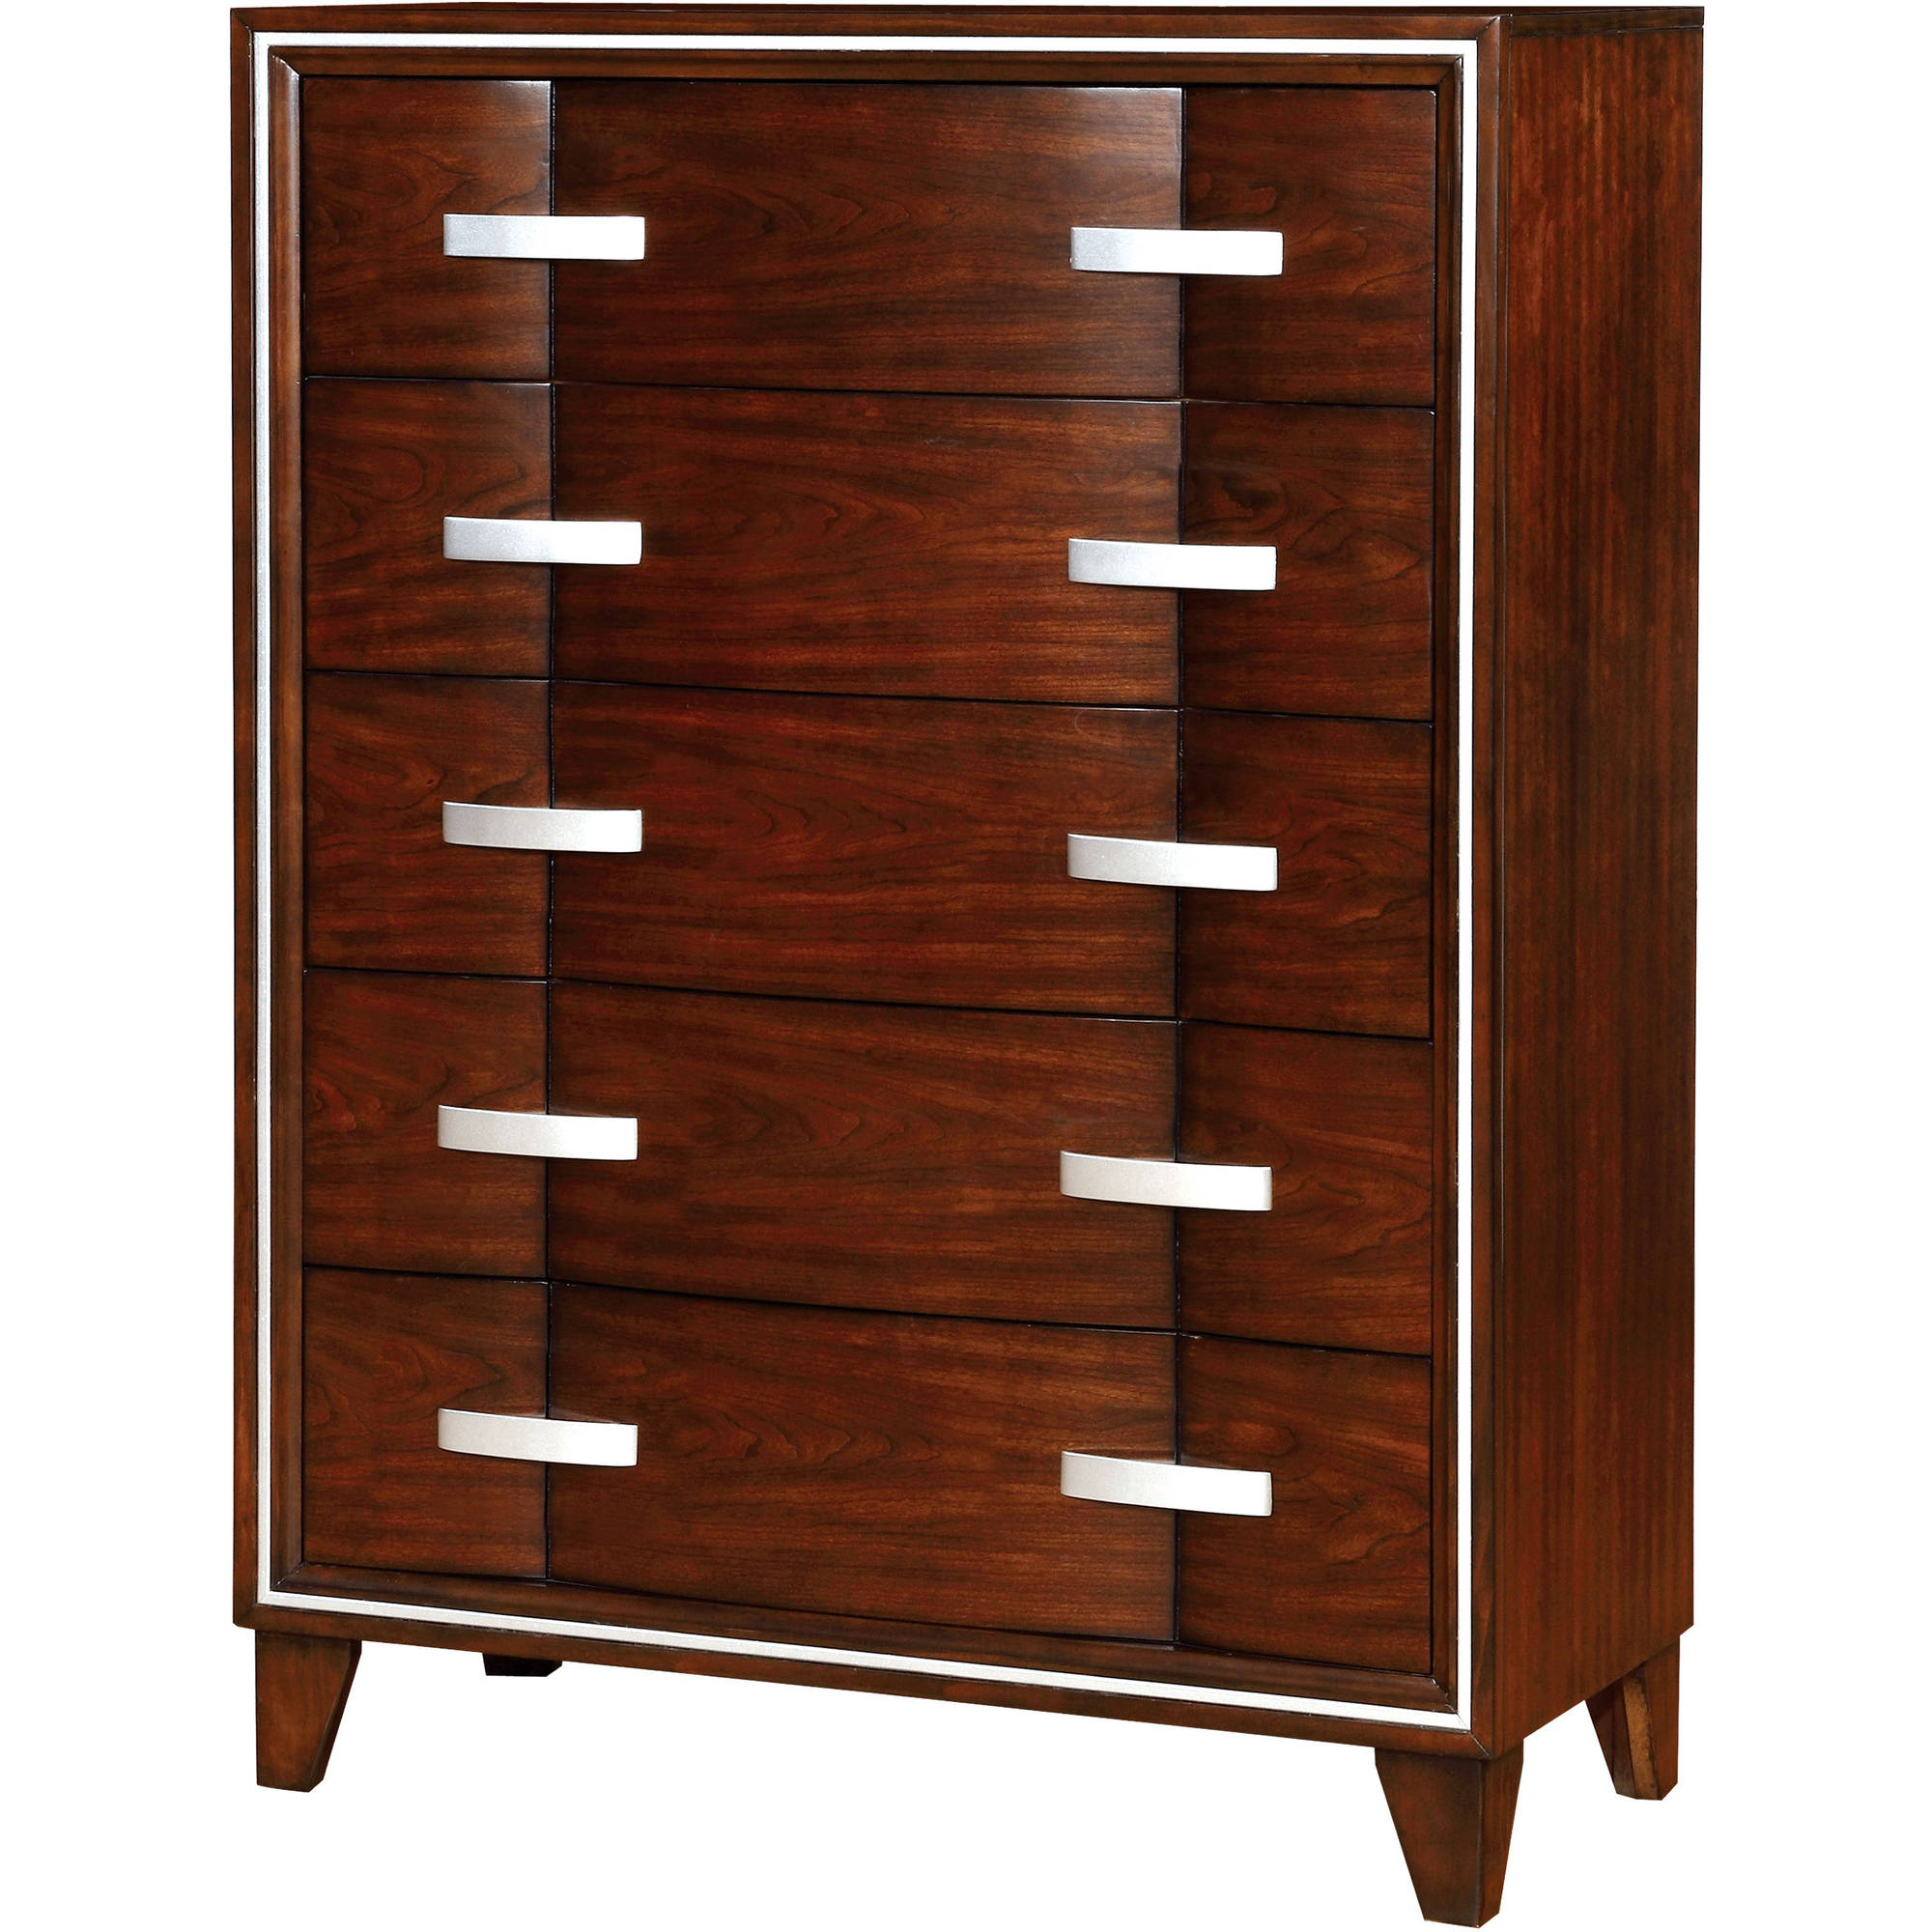 Furniture of America Maris Contemporary Bedroom Chest, Brown Cherry